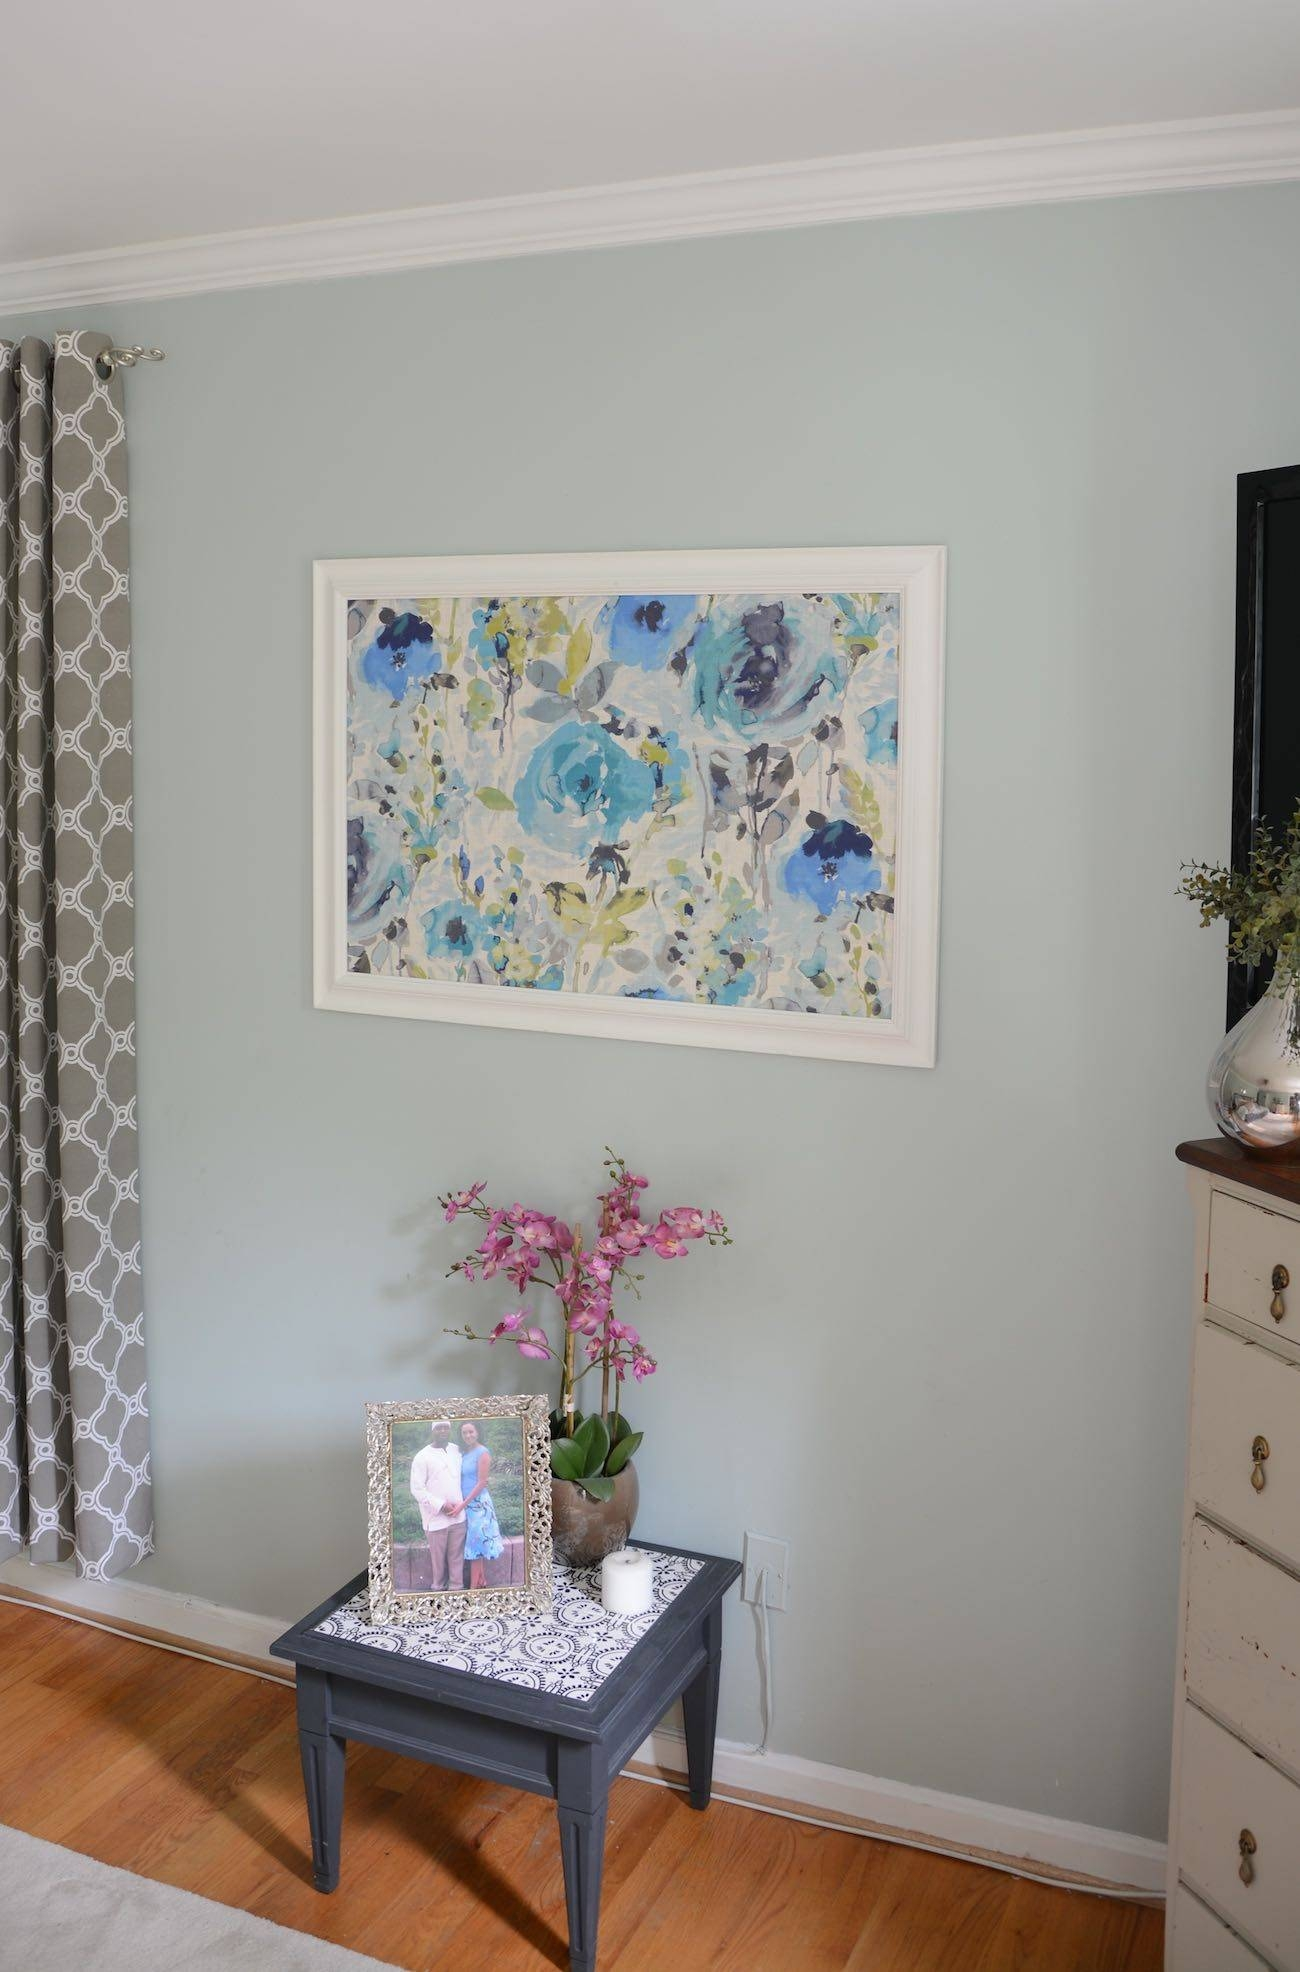 How To Frame Fabric For Wall Art With A Picture Frame Inside Recent Framed Fabric Wall Art (View 3 of 20)